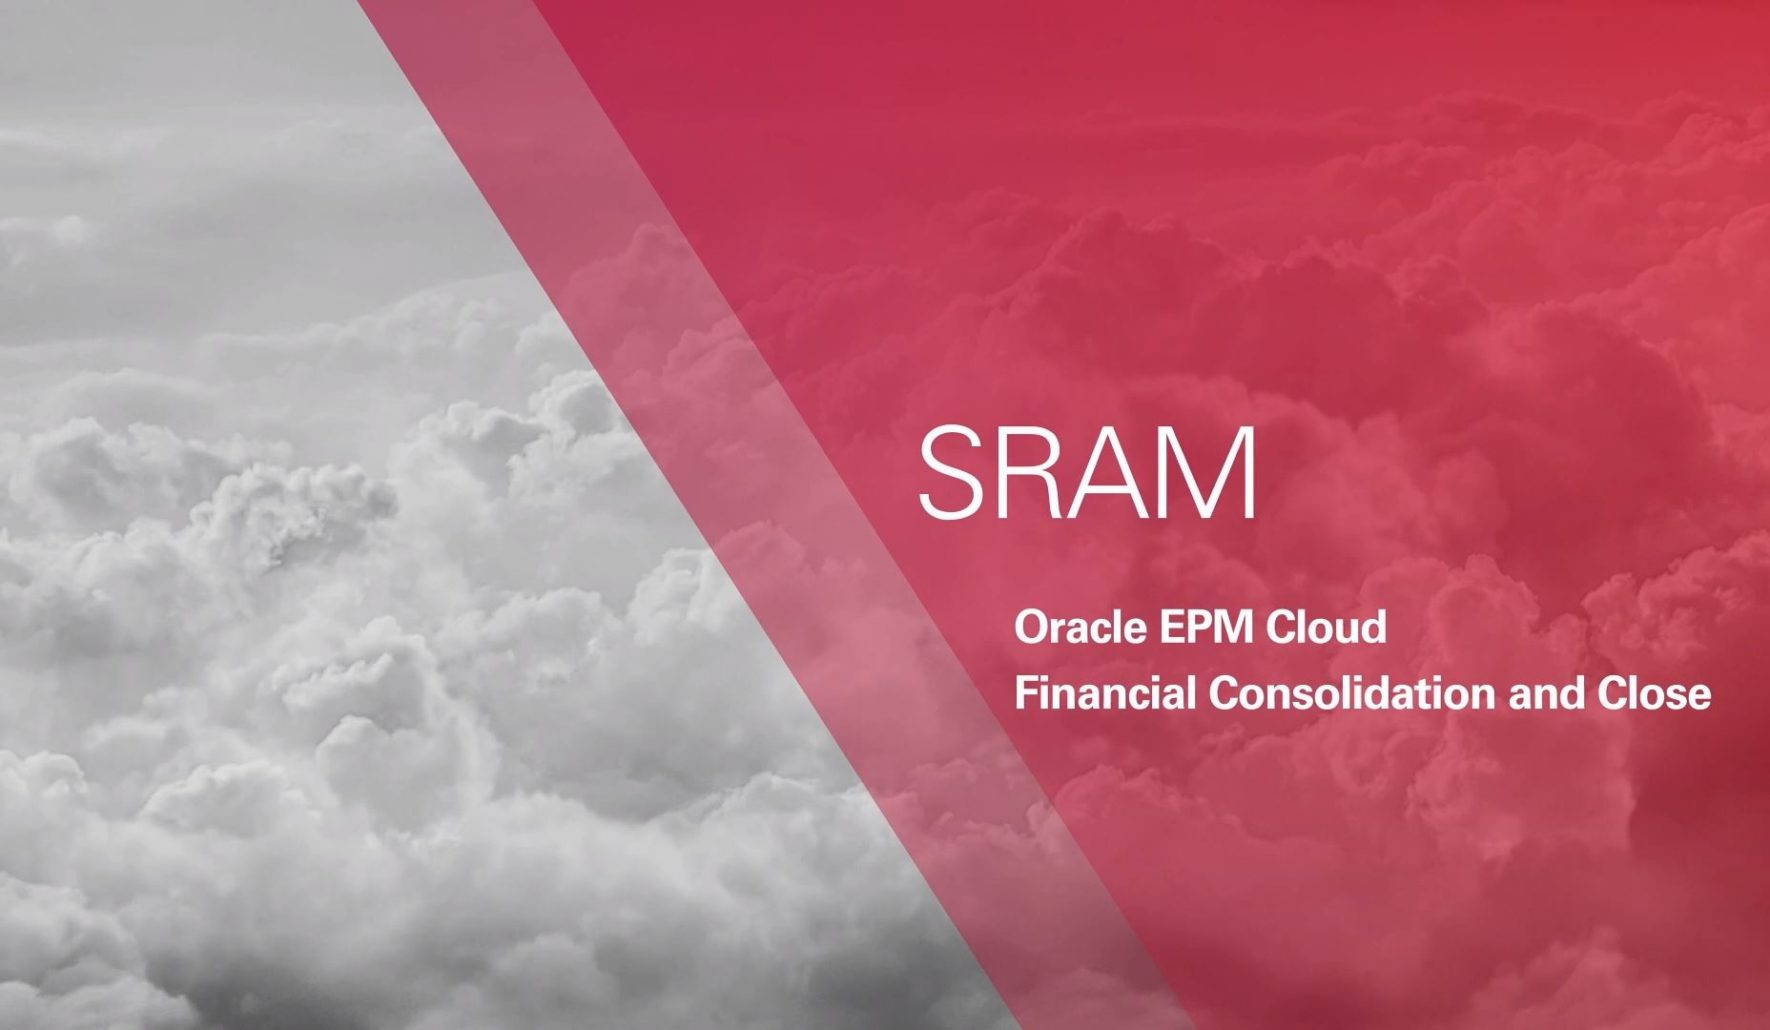 SRAM - Oracle EPM Cloud Financial Consolidation and Close